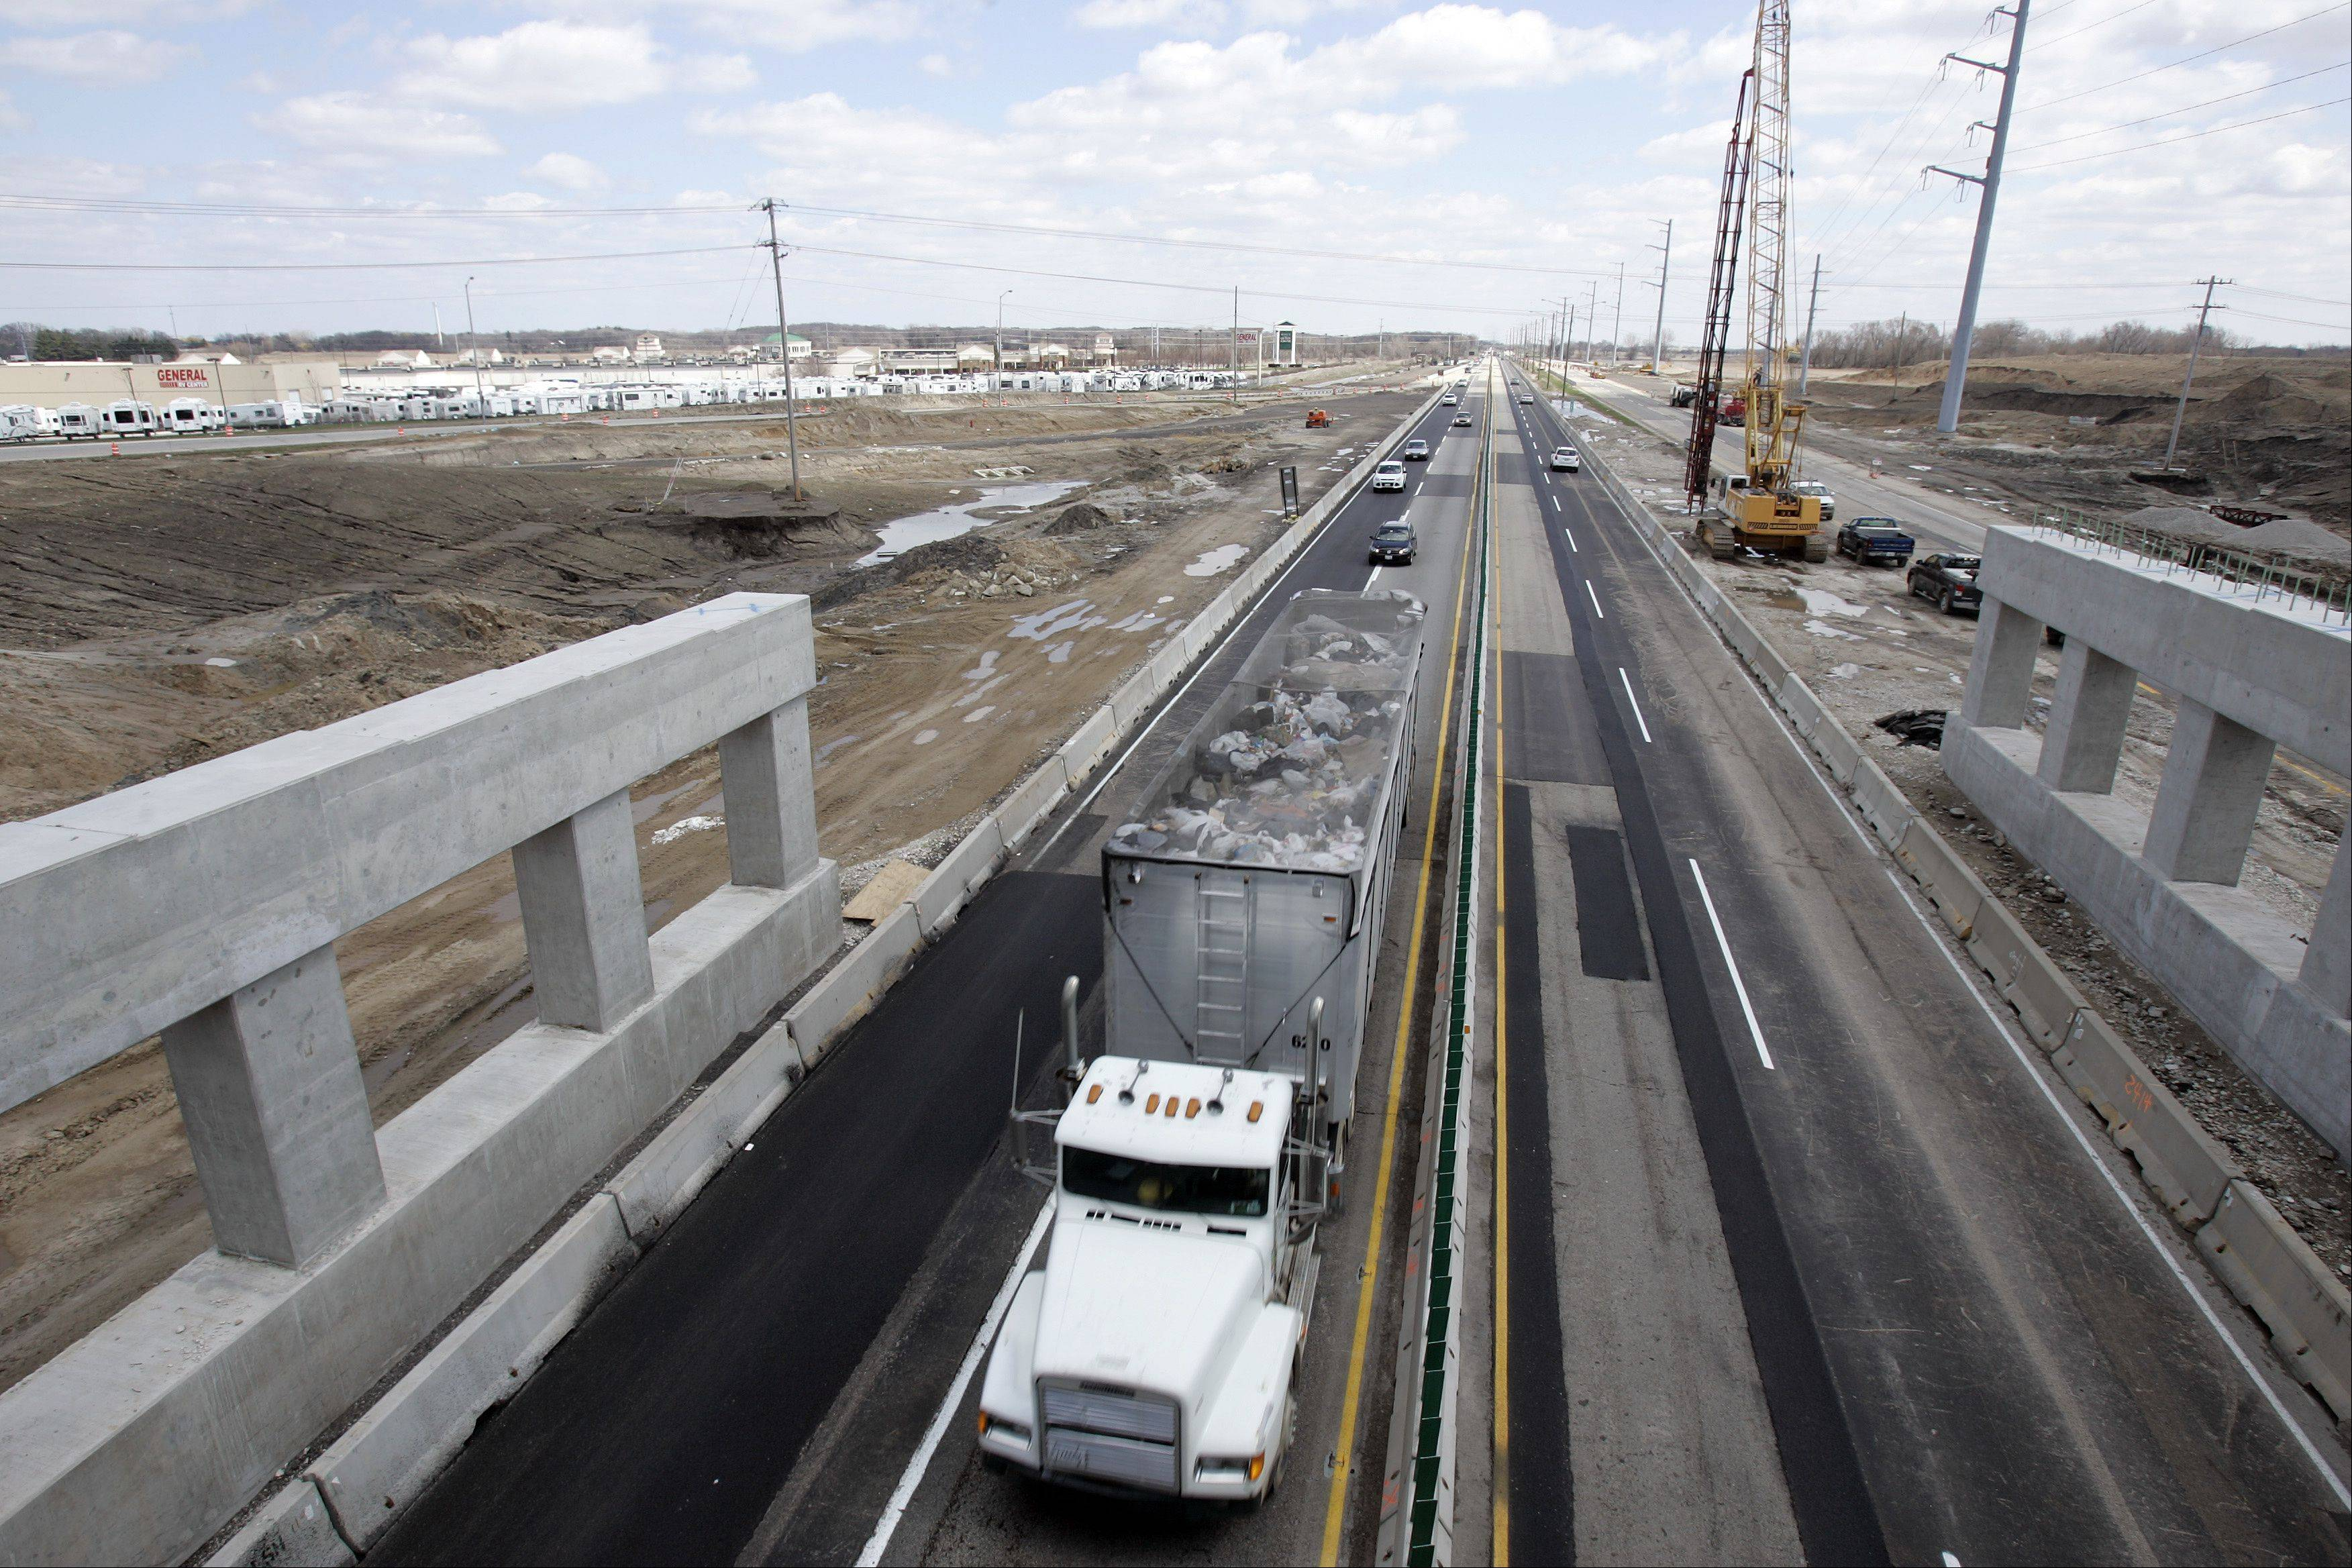 The spring/summer construction season is ramping up. A truck travels west along the Jane Addams Tollway (I-90) as construction continues at the new full interchange at Route 47 in Huntley.